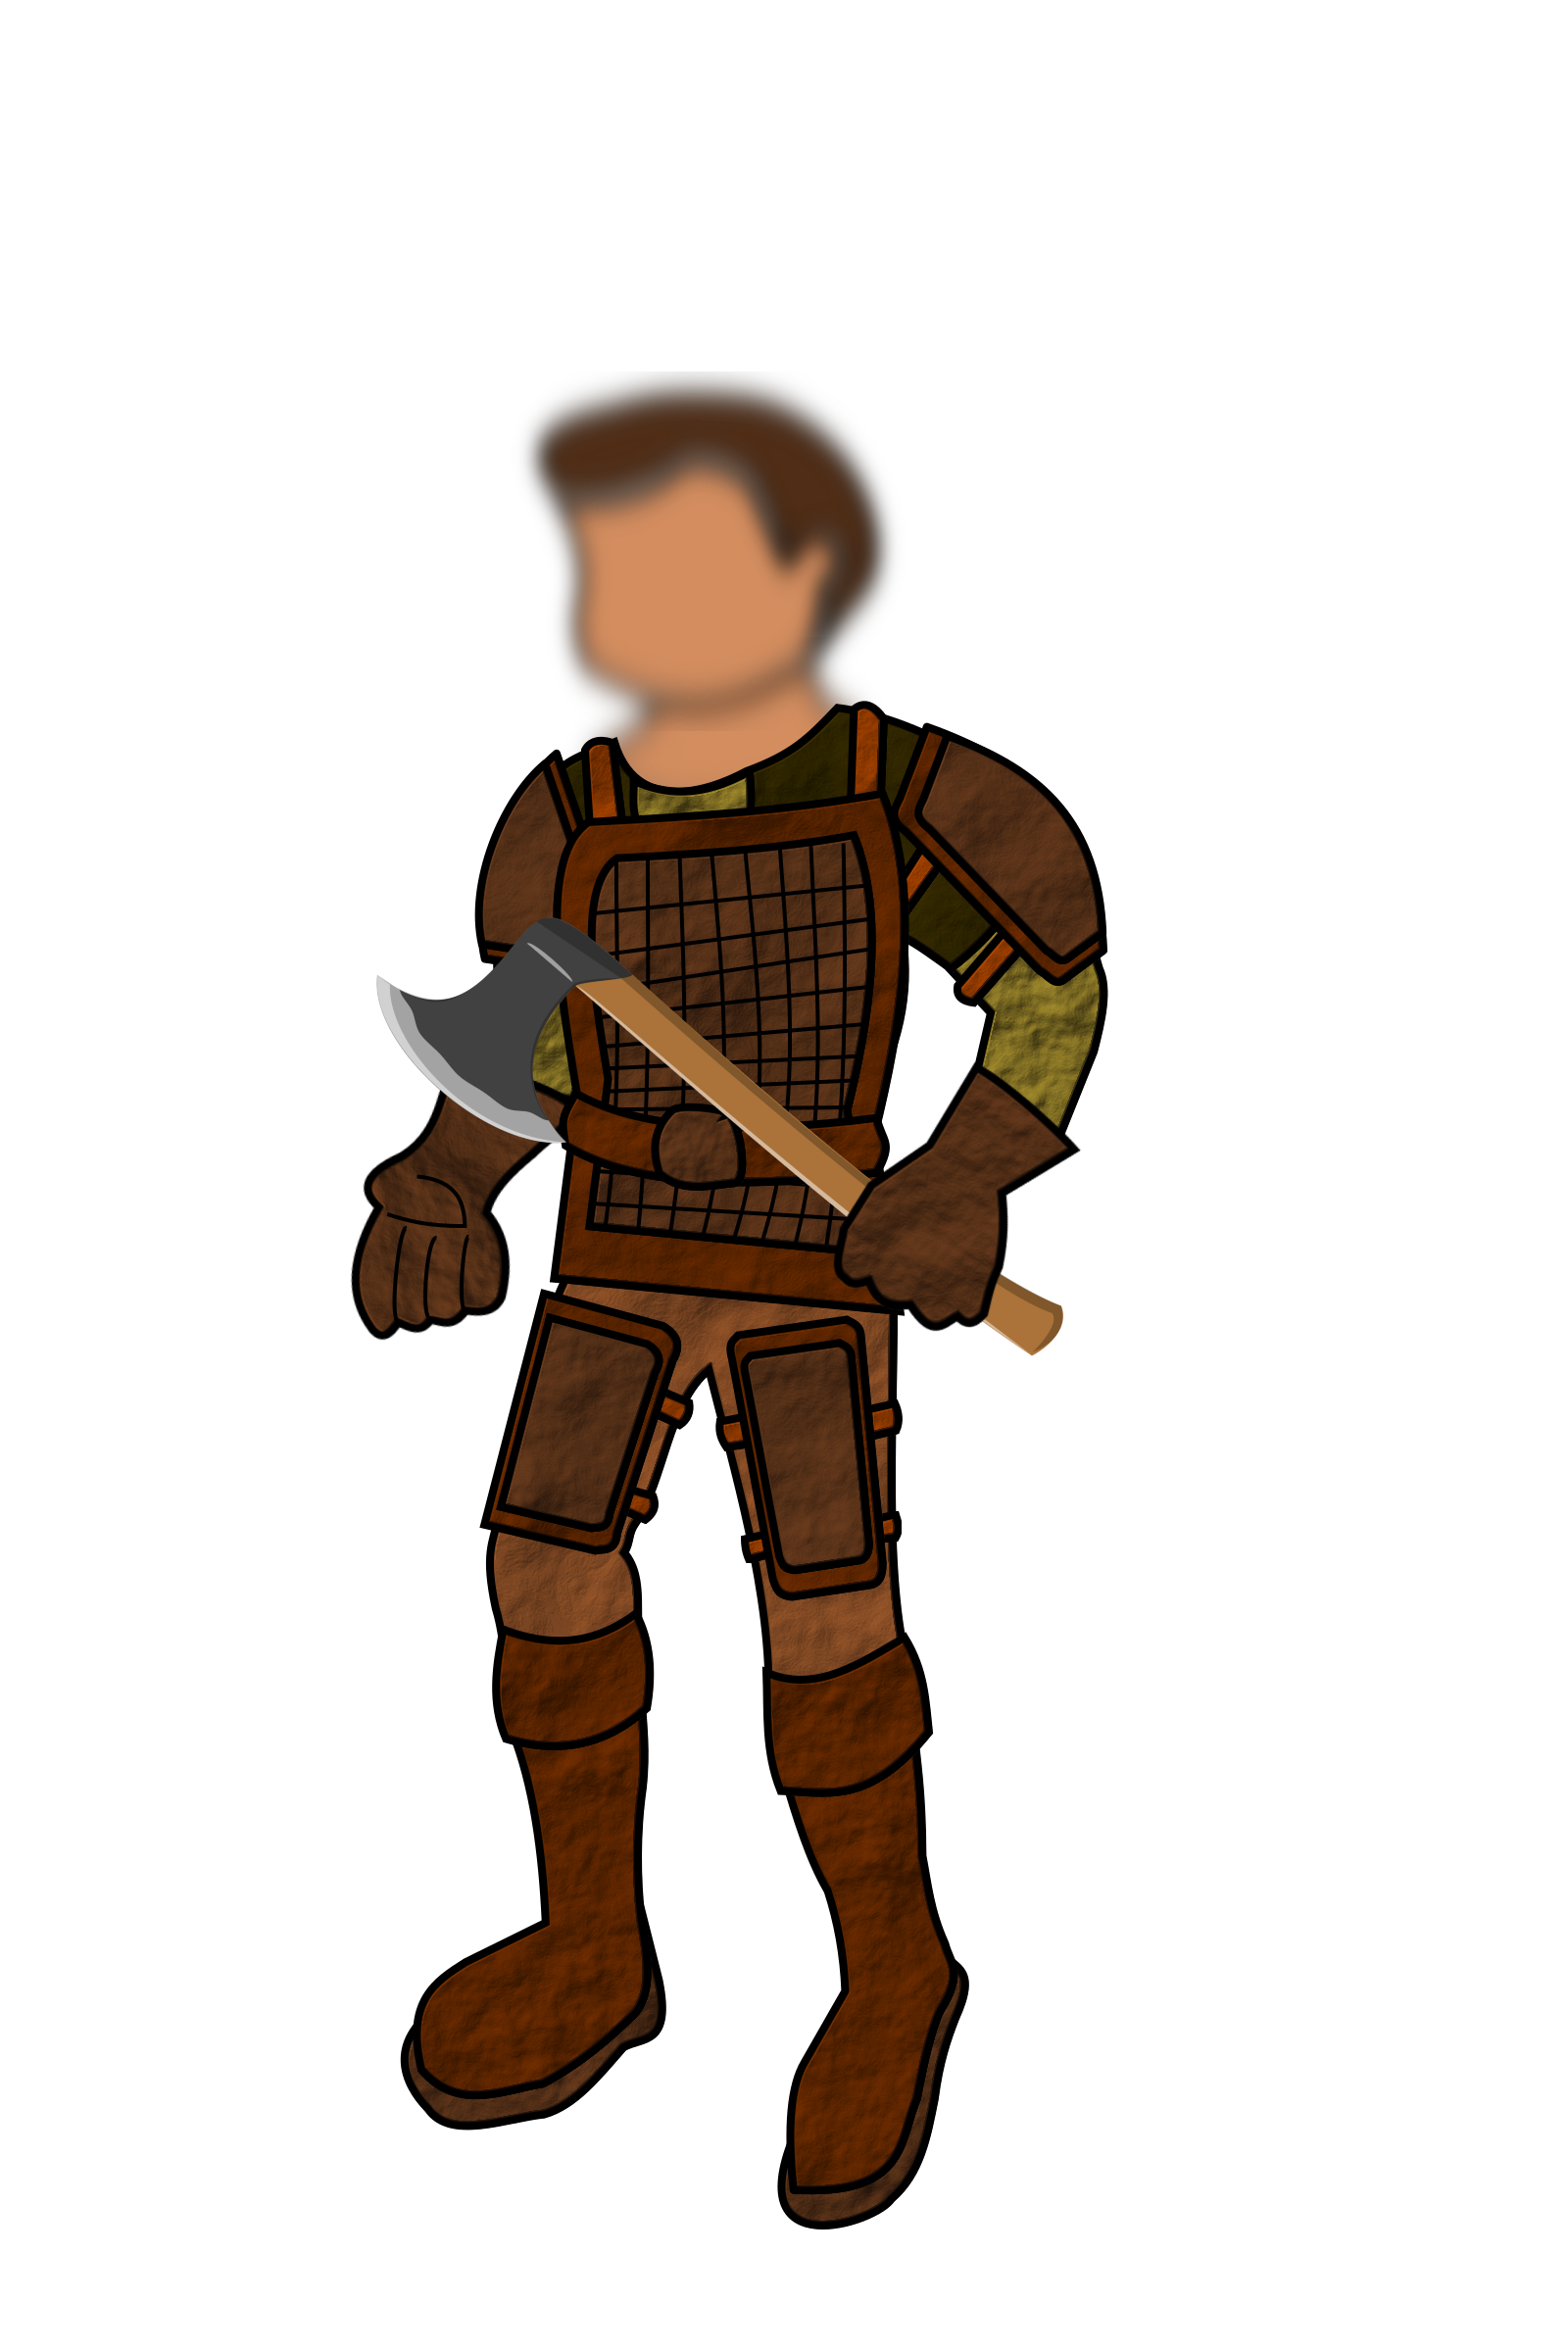 Leather Armor clipart #8, Download drawings